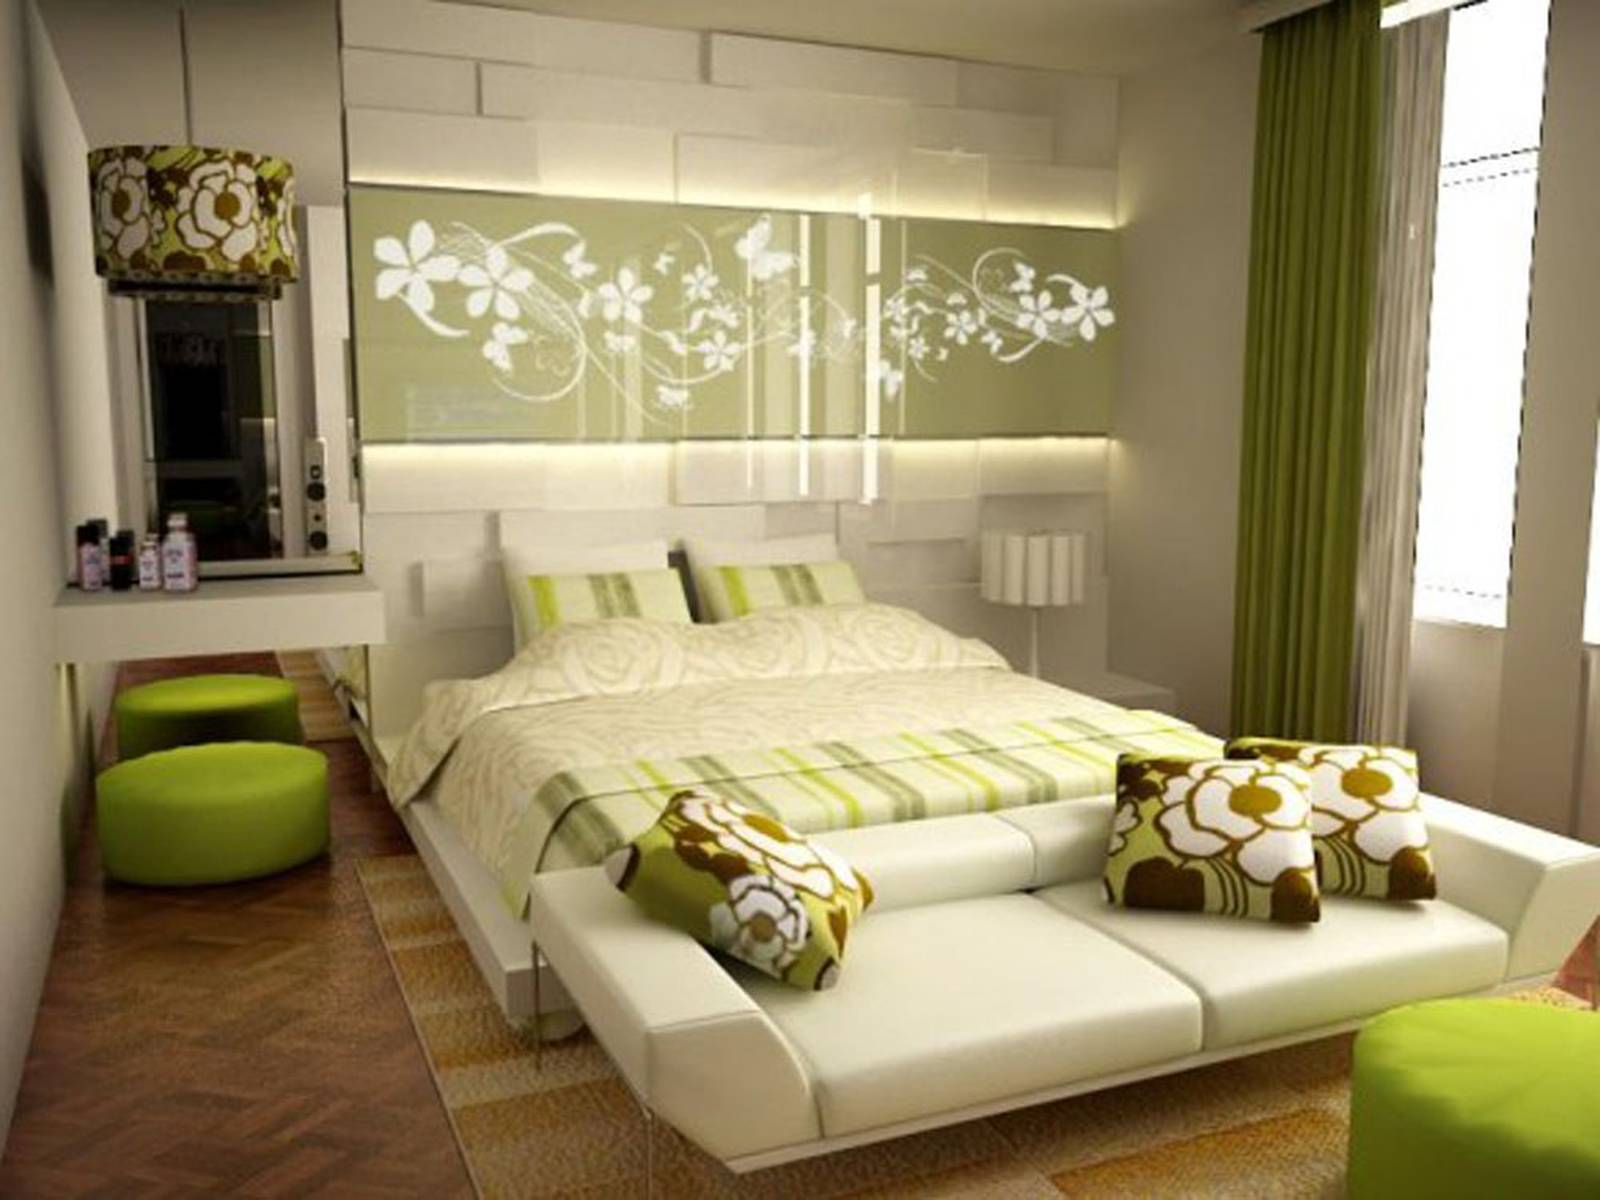 14 Amazing Bedroom Designs With Blue And Bright Green - Homedizz